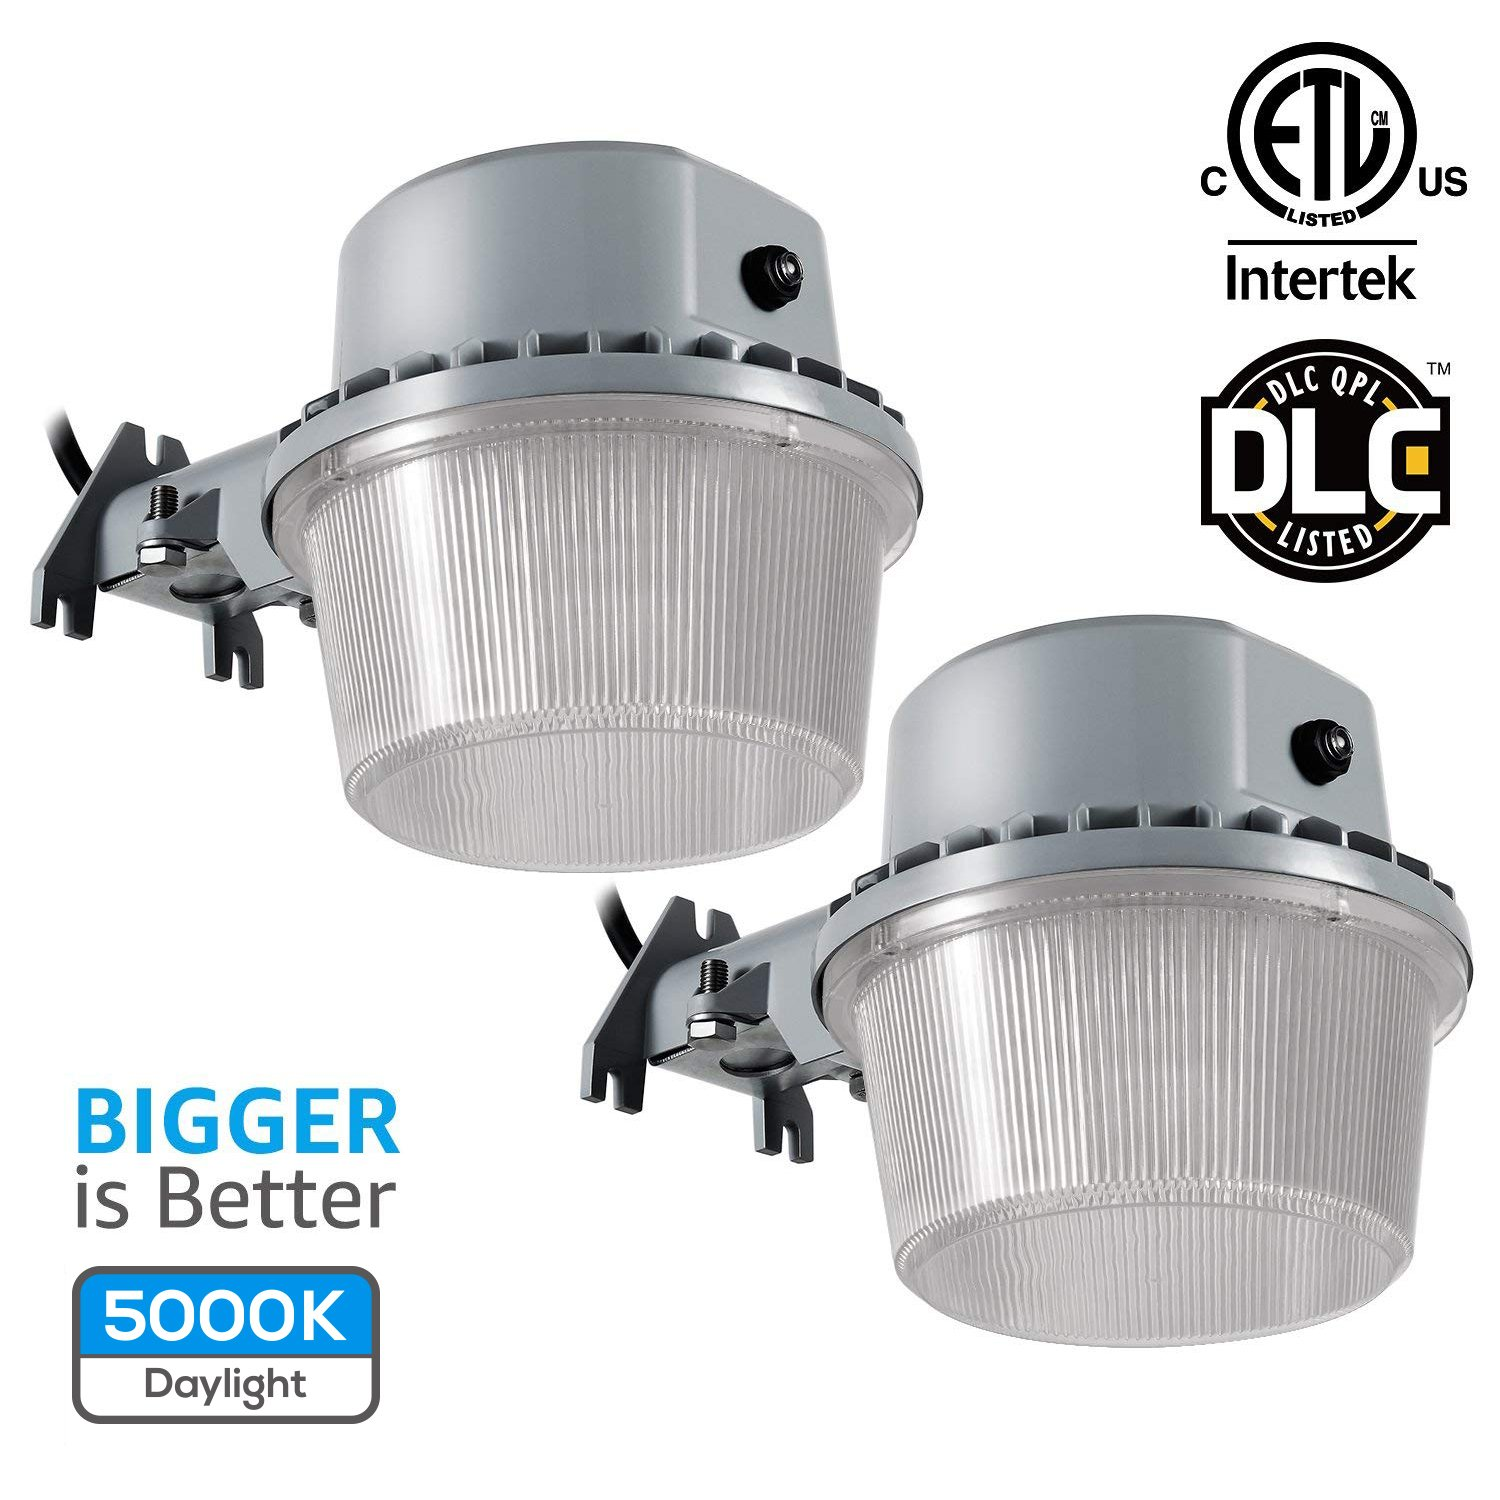 TORCHSTAR Dusk-to-Dawn LED Outdoor Barn Light (Photocell Included), 35W (250W Equiv.), 3500lm 5000K Floodlight, DLC & ETL-Listed Yard Light for Area Lighting, 5-Year Warranty, Silver, Pack of 2